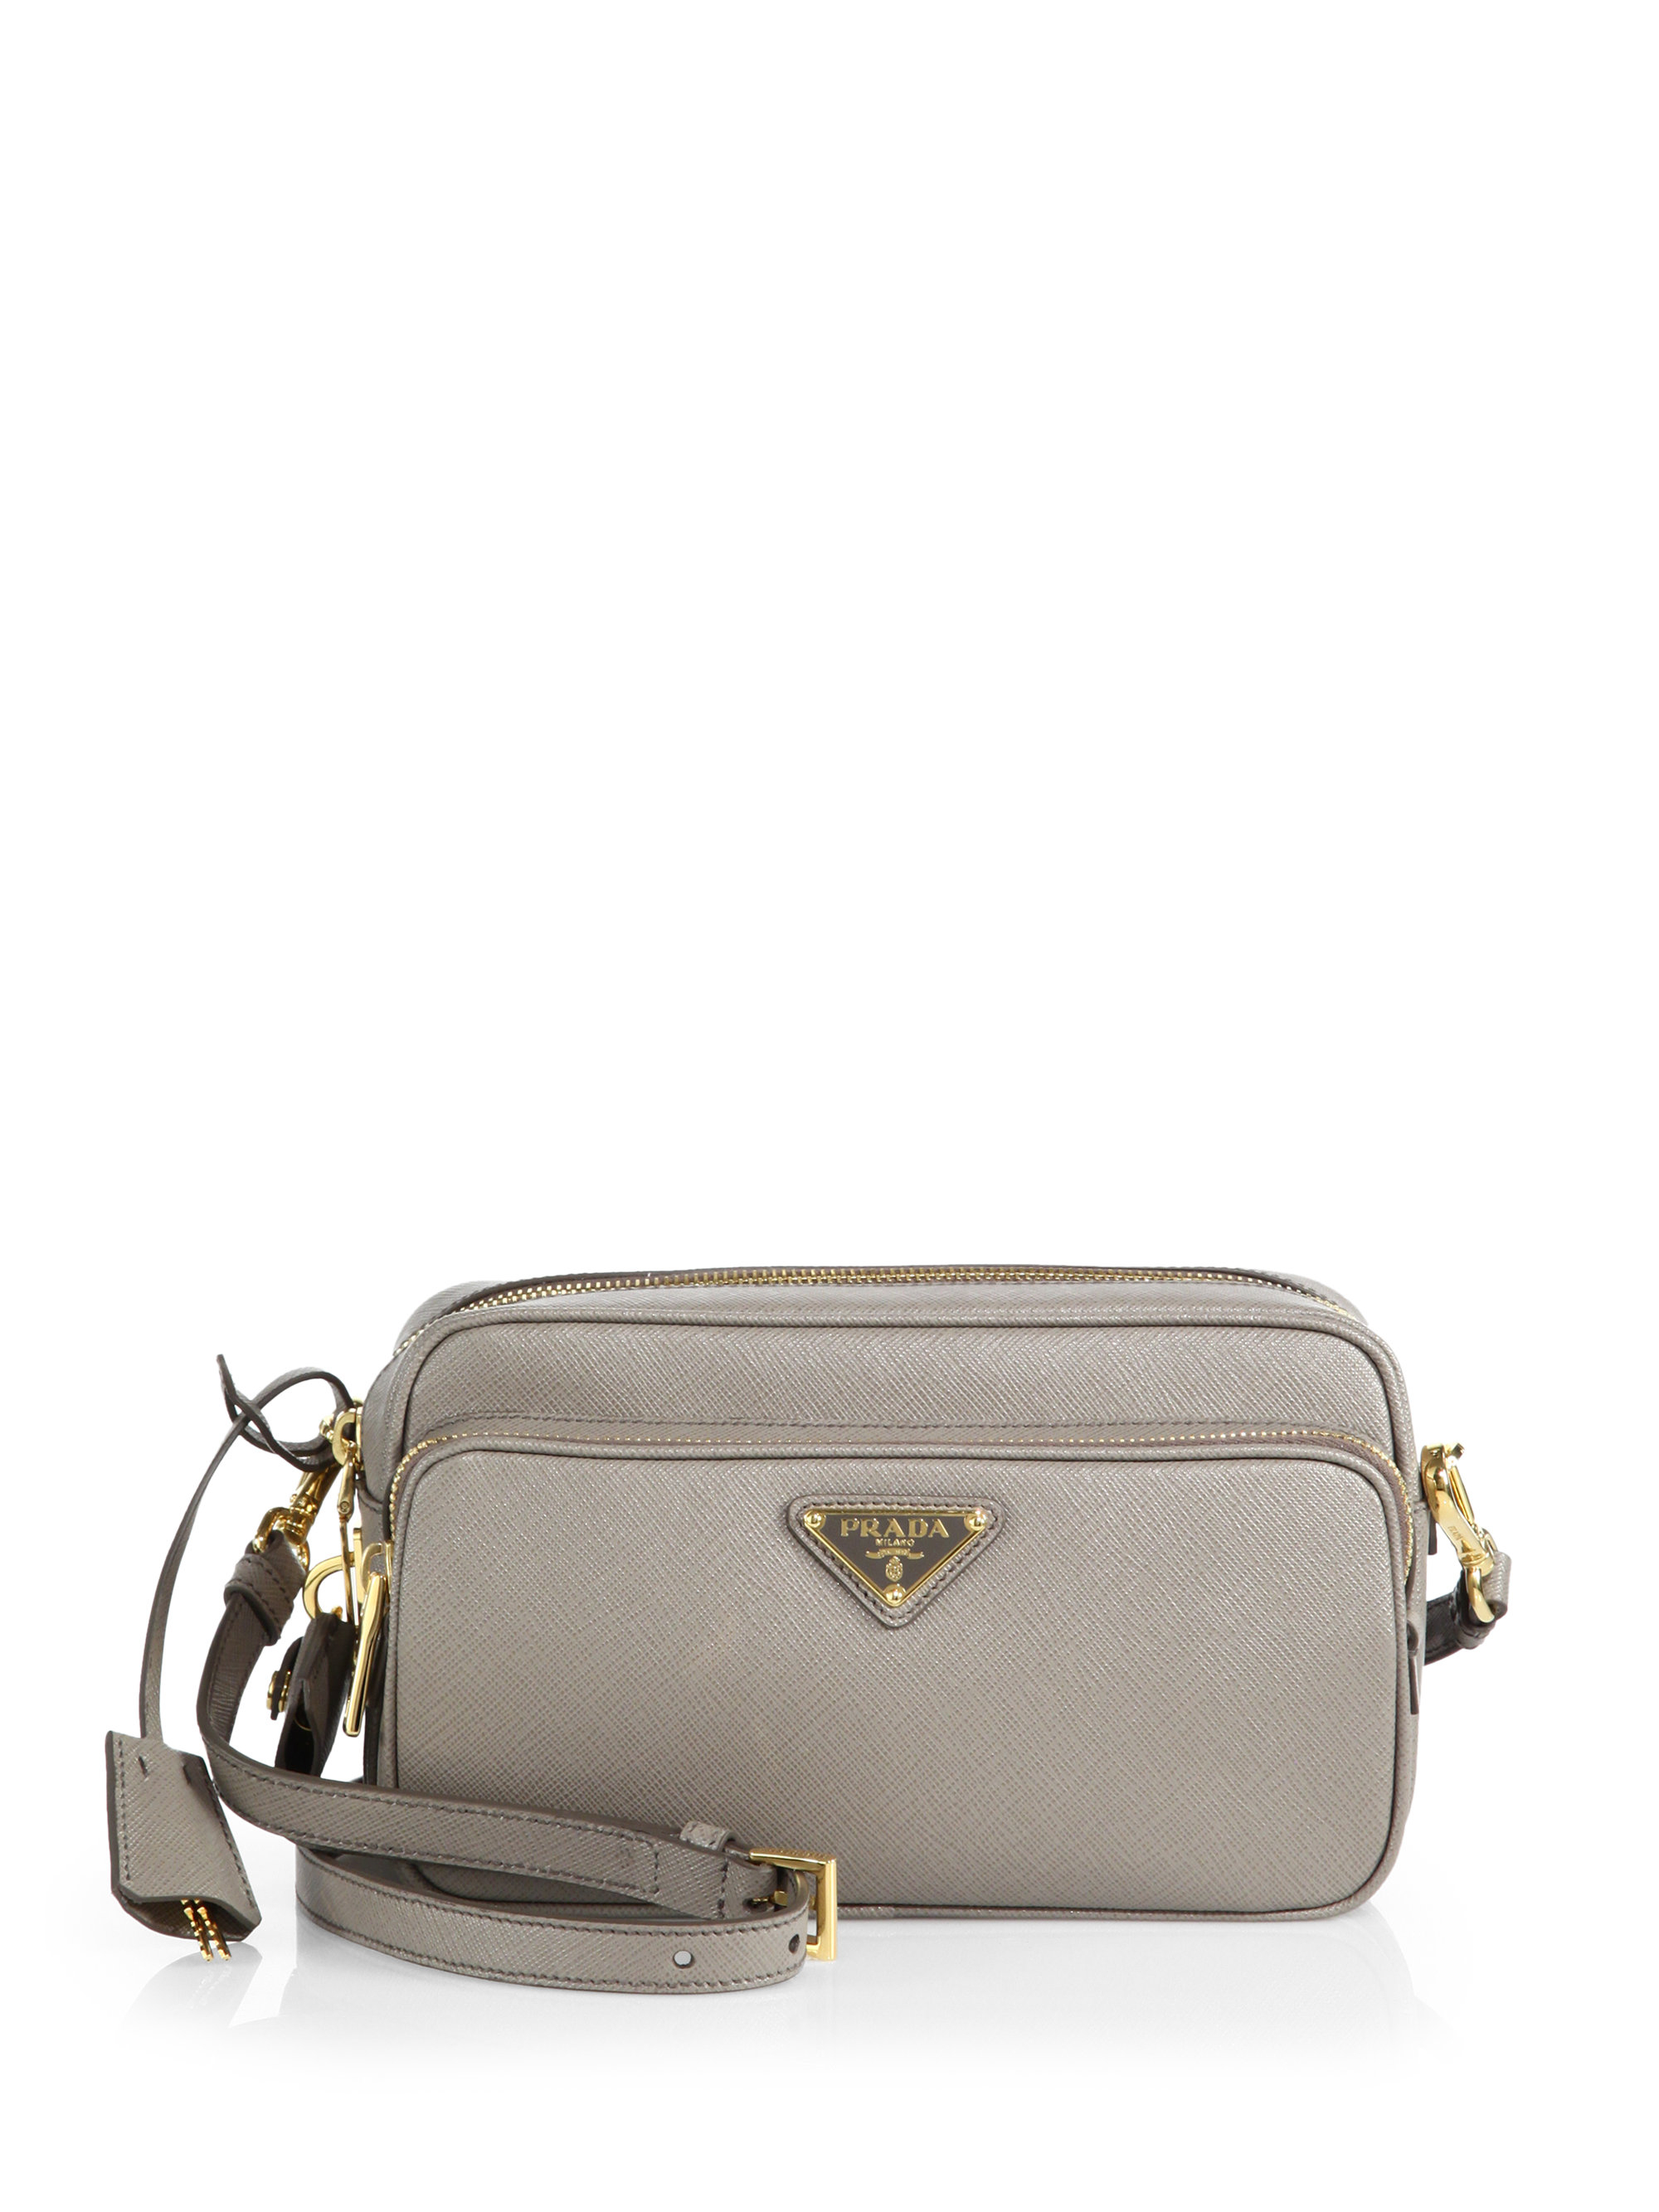 buy authentic prada online - Prada Saffiano Lux Double-zip Crossbody Bag in Gray (ARGILLA-GREY ...